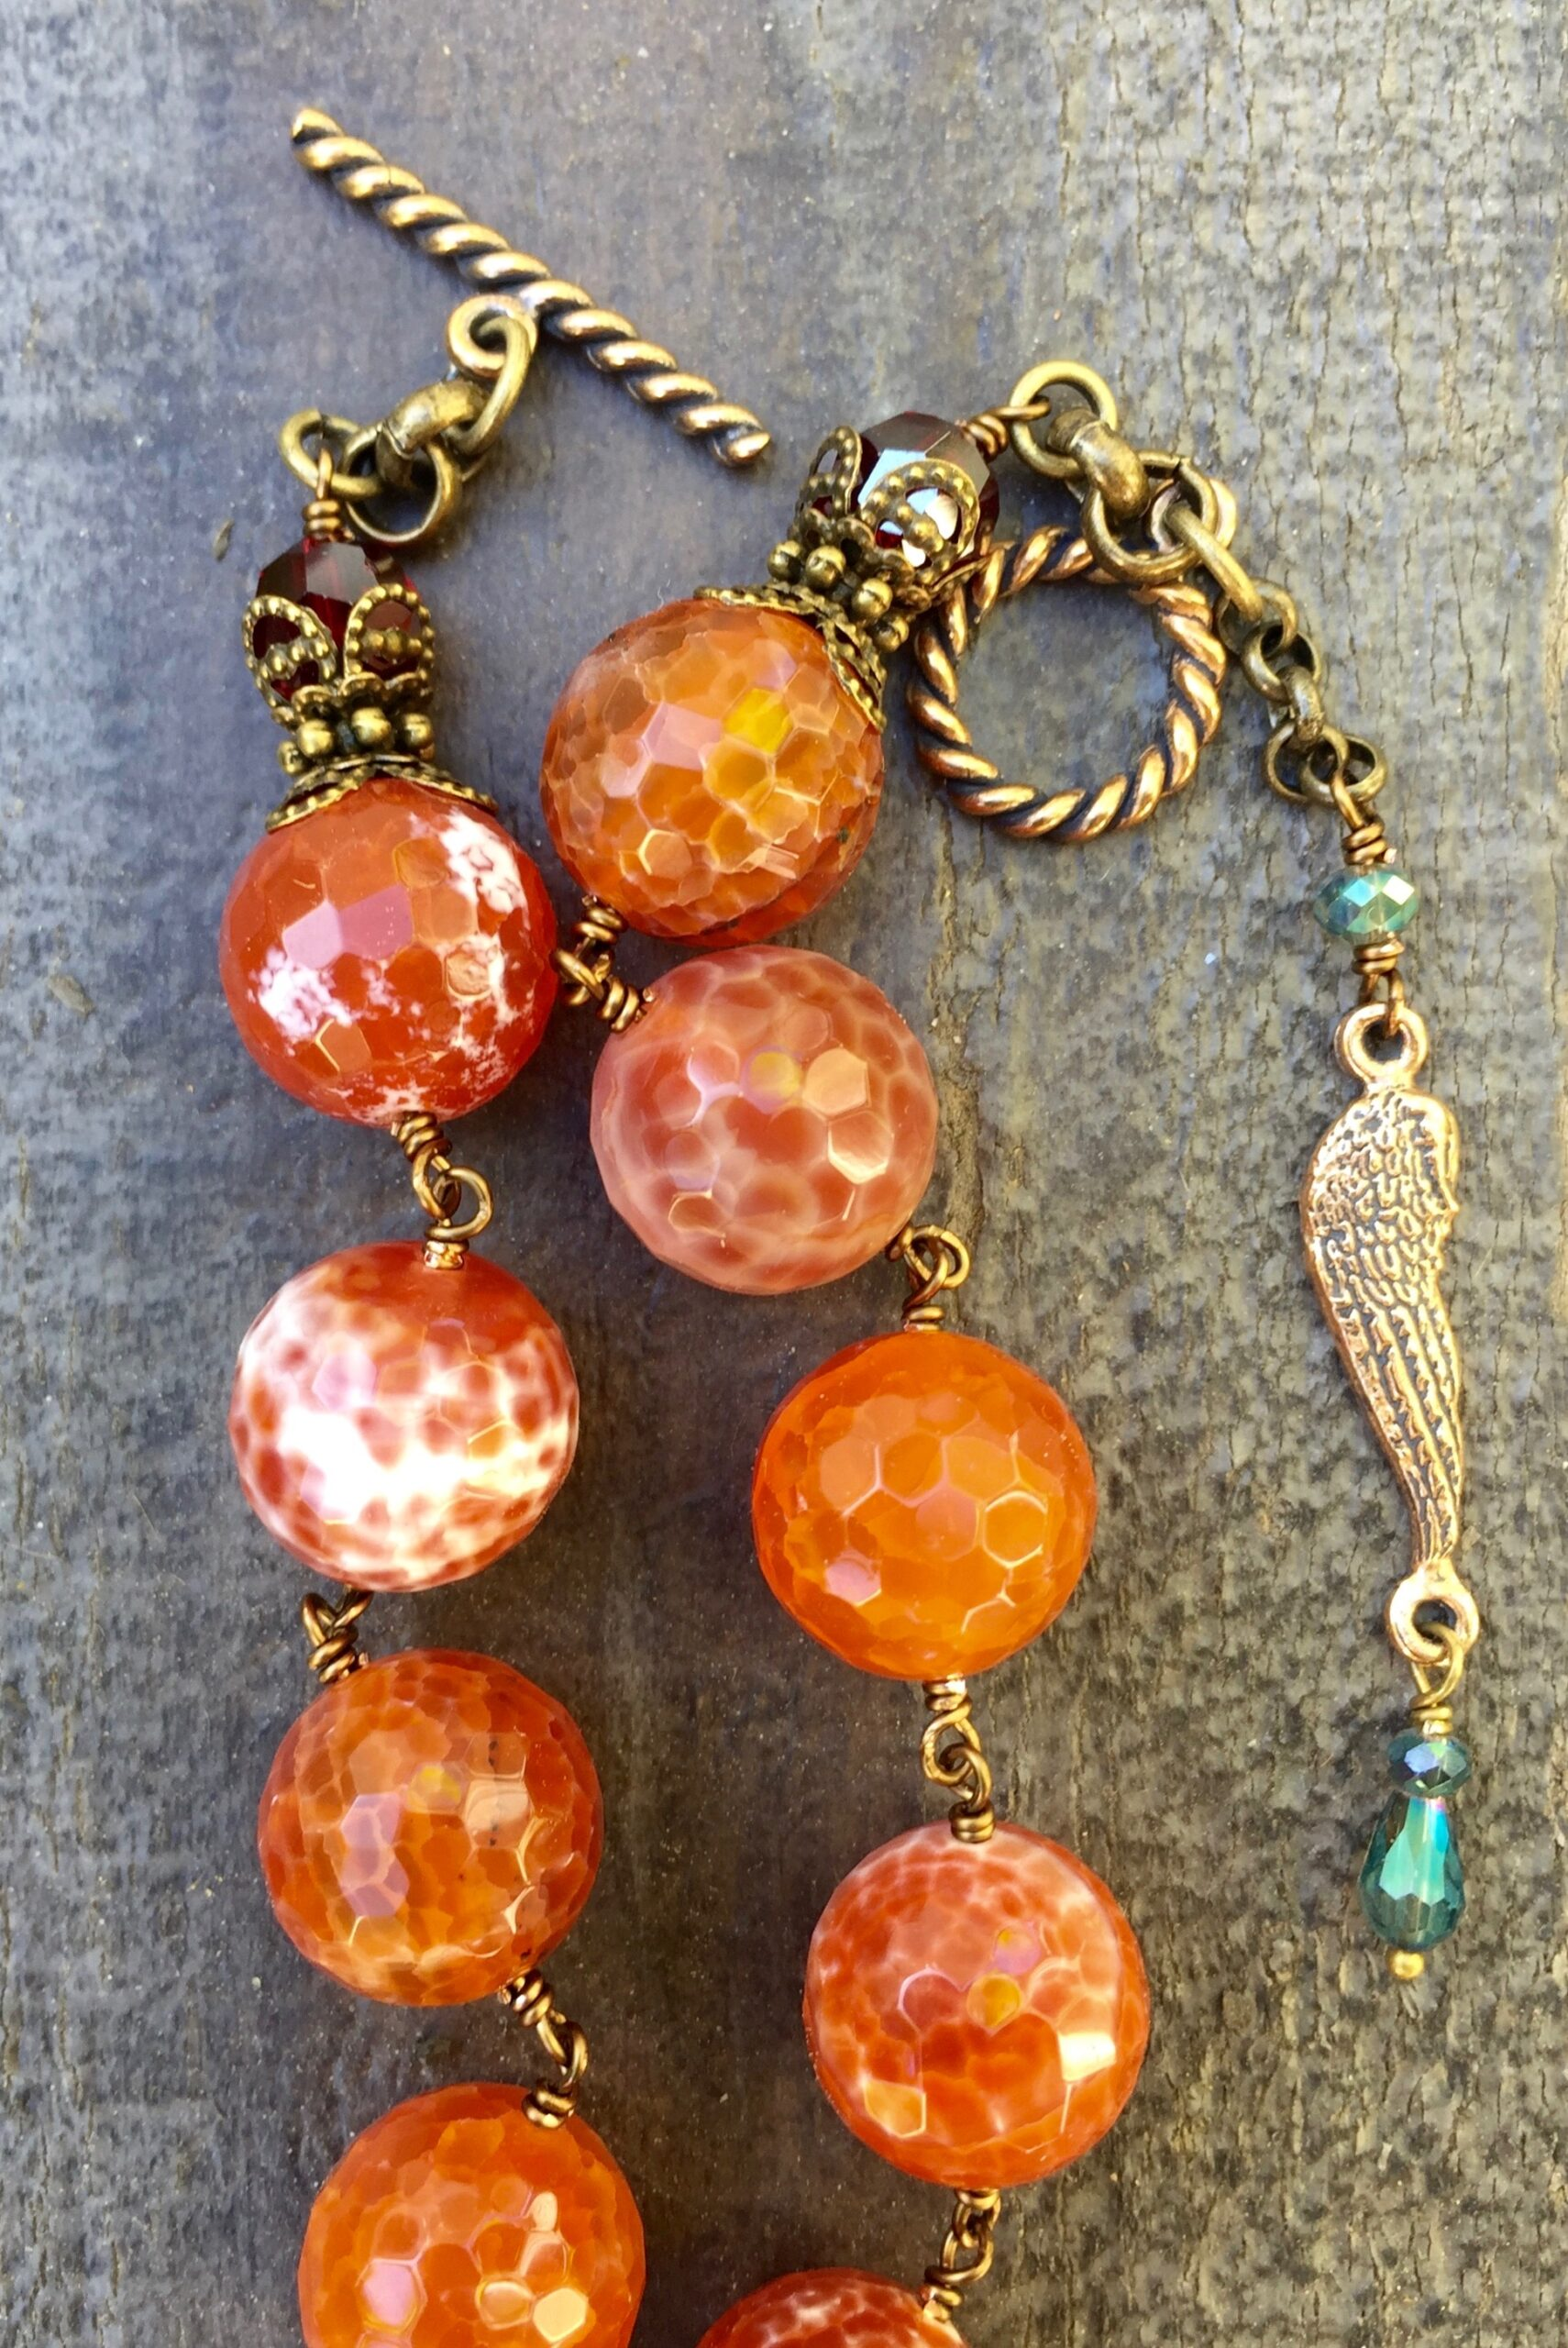 Faceted Carnelian Quartz with Garnet Crystal Necklace – 12mm